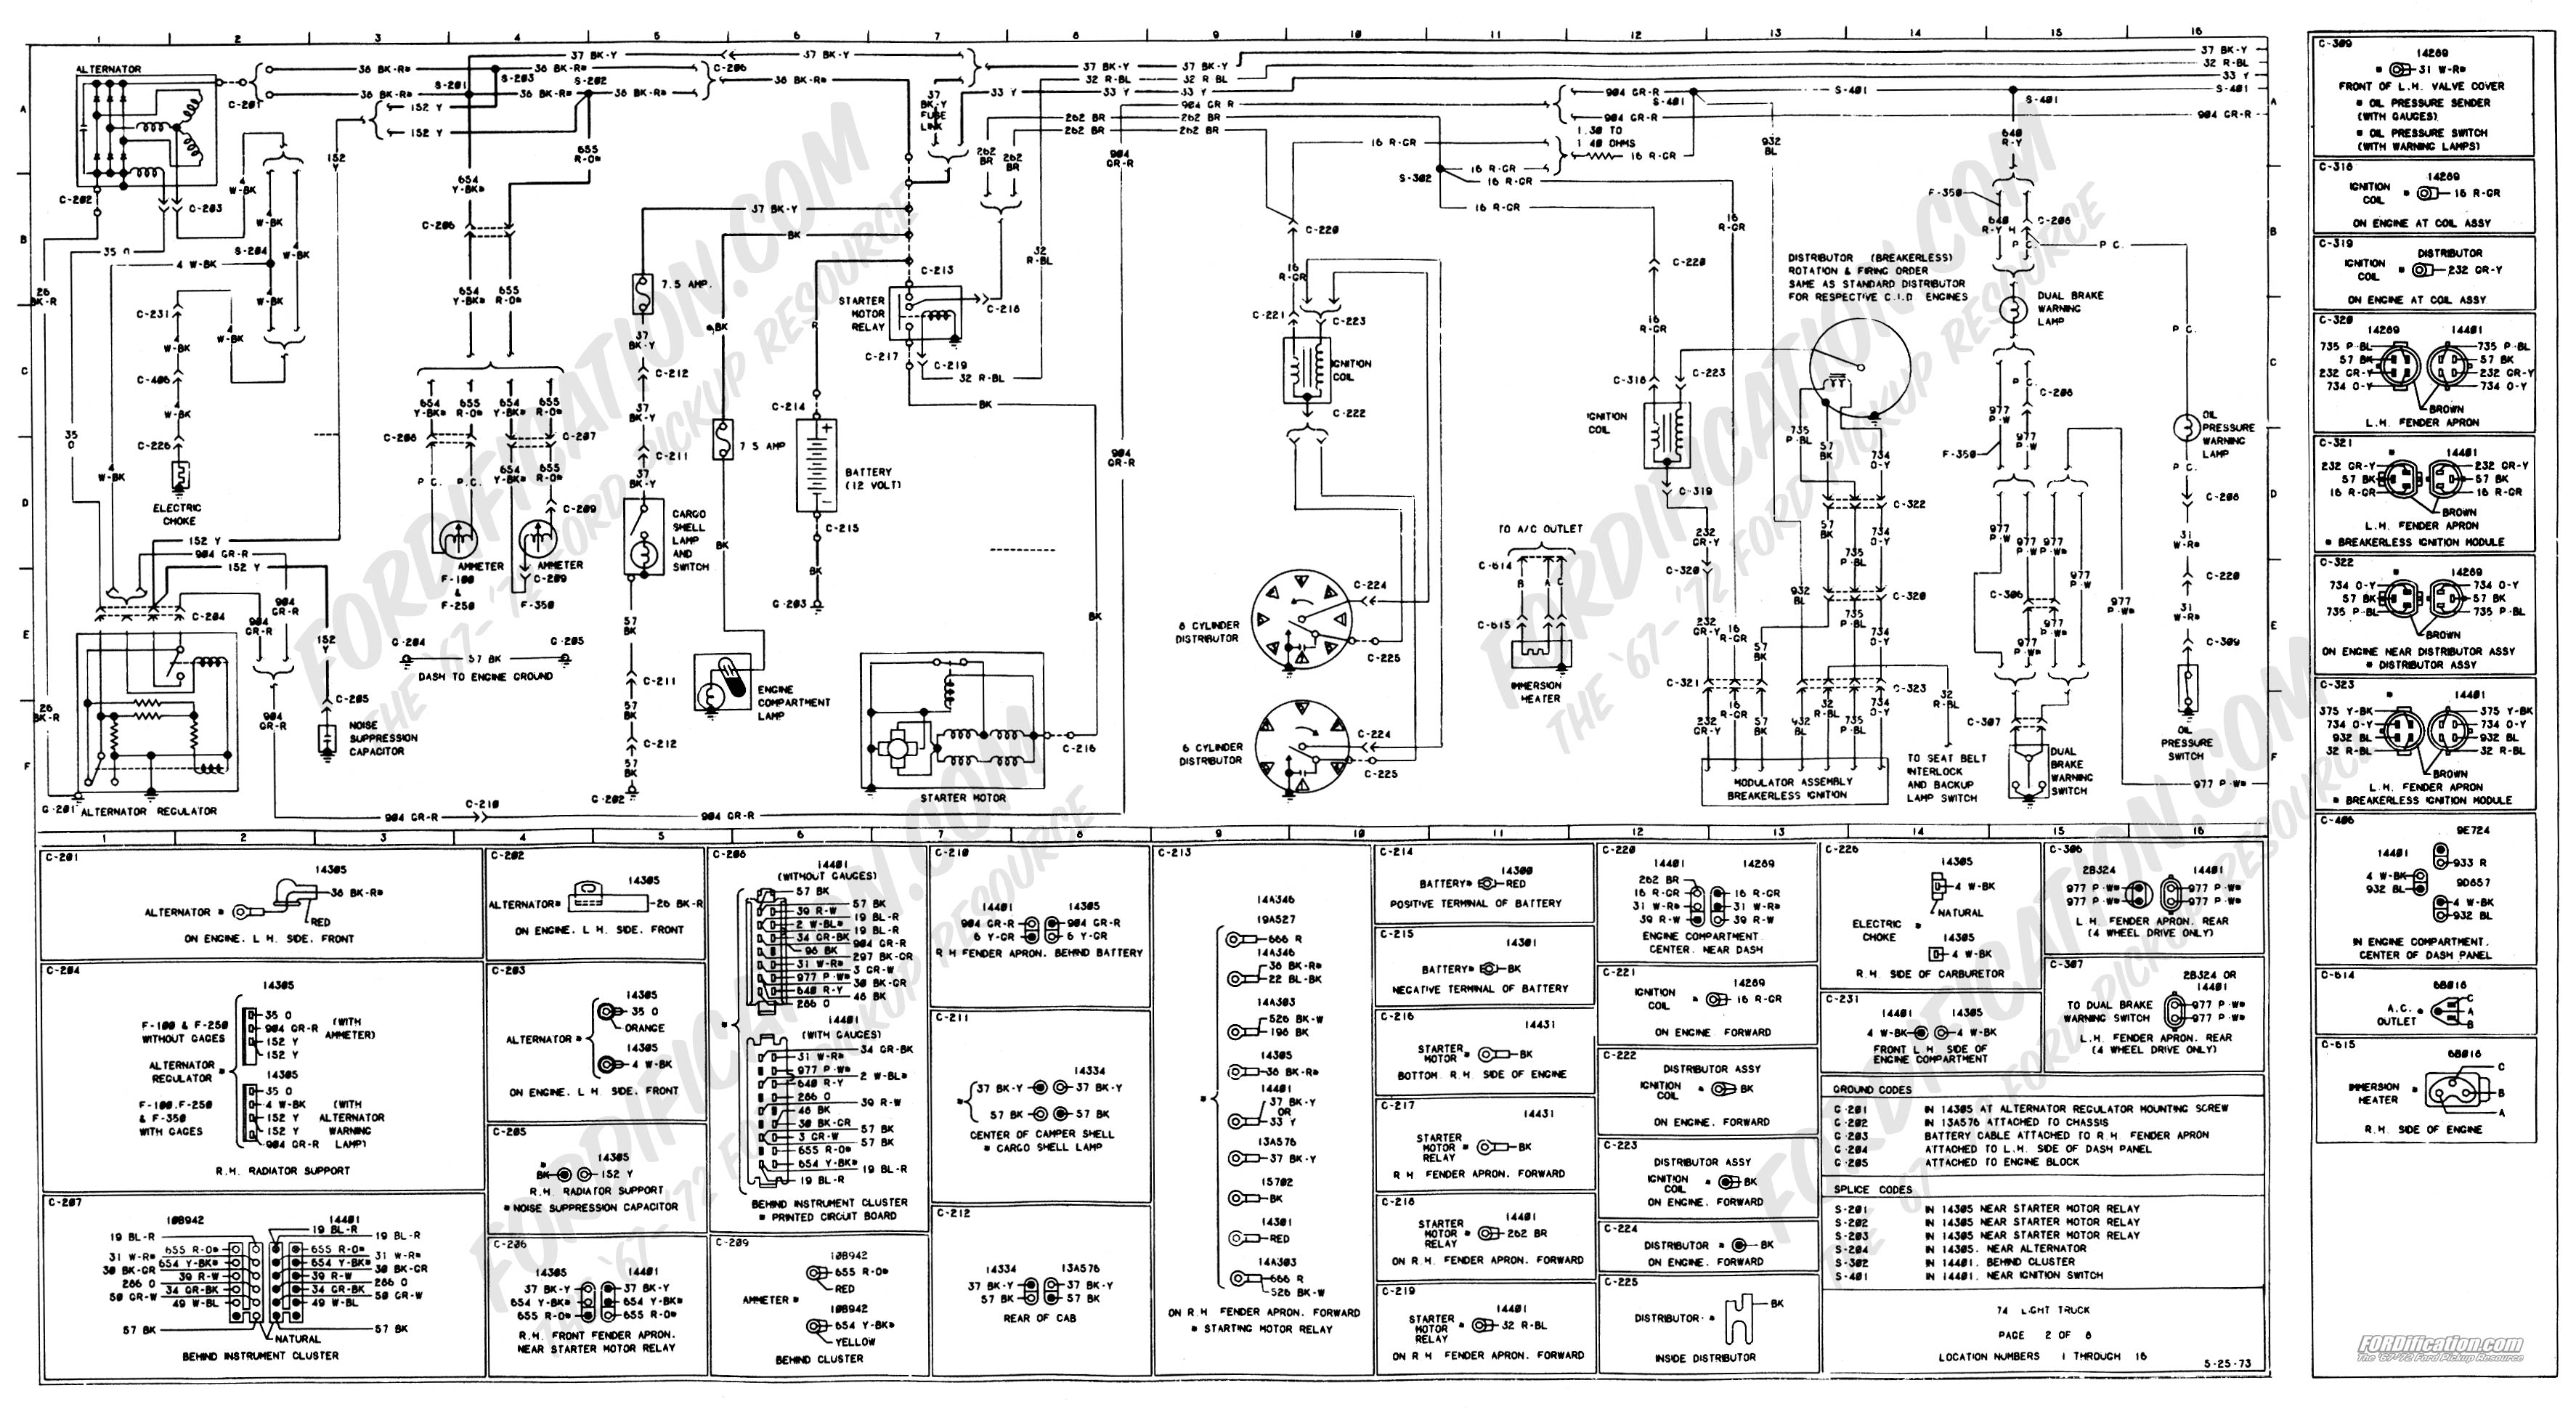 Mack Gu713 Wiring Diagram Master Blogs Alternator Ford F800 Schematic Explained Rh 8 11 Corruptionincoal Org Cab Fuse Box